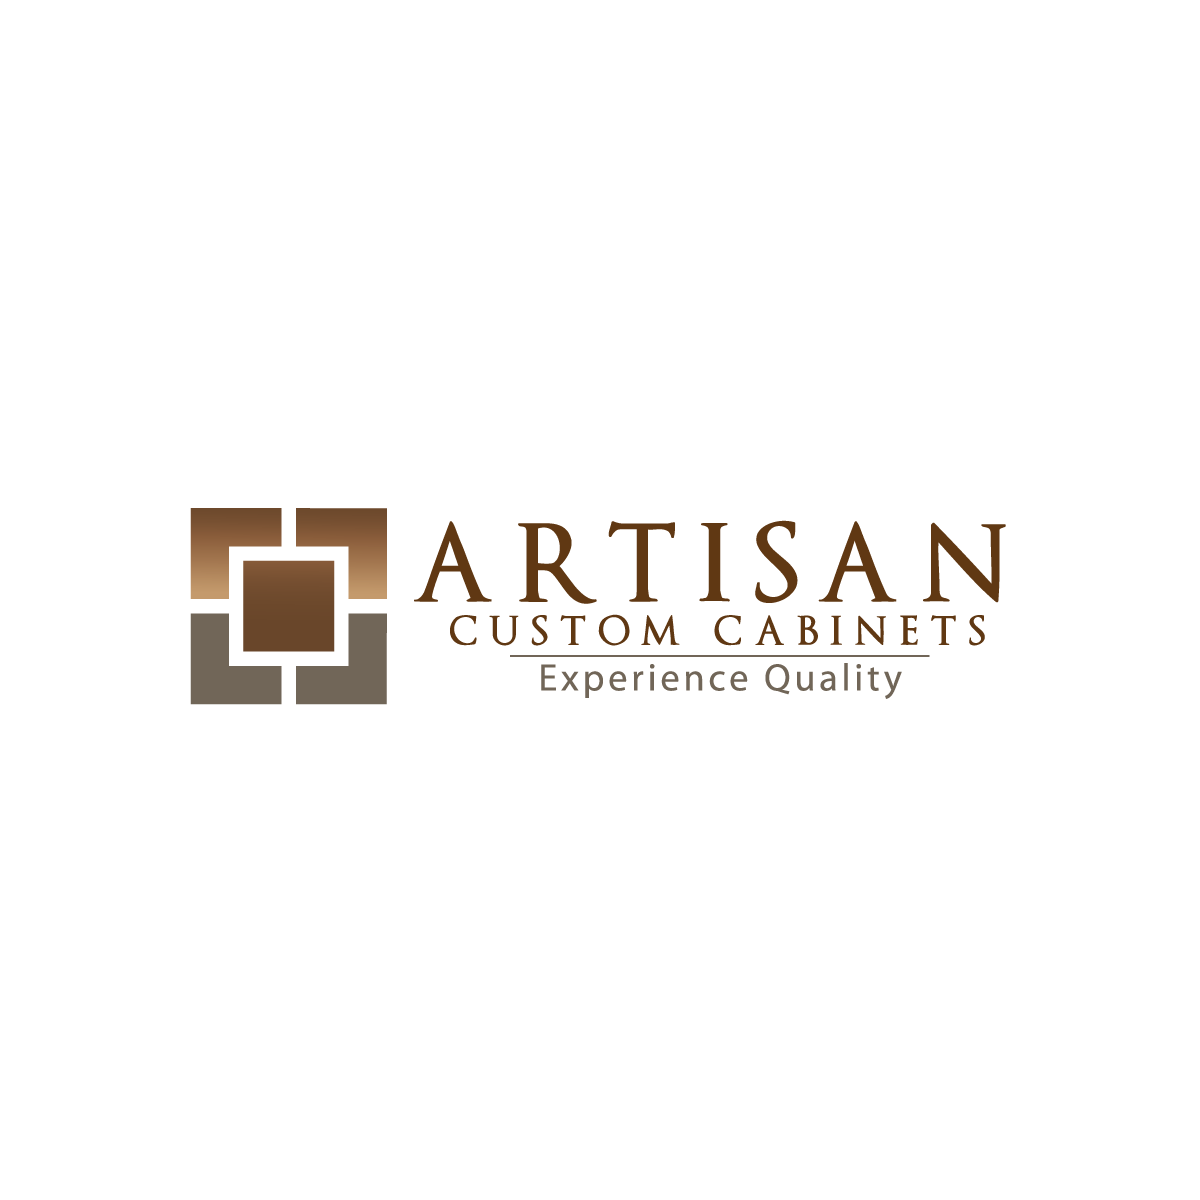 Logo Design by rockin - Entry No. 83 in the Logo Design Contest Creative Logo Design for Artisan Custom Cabinets.